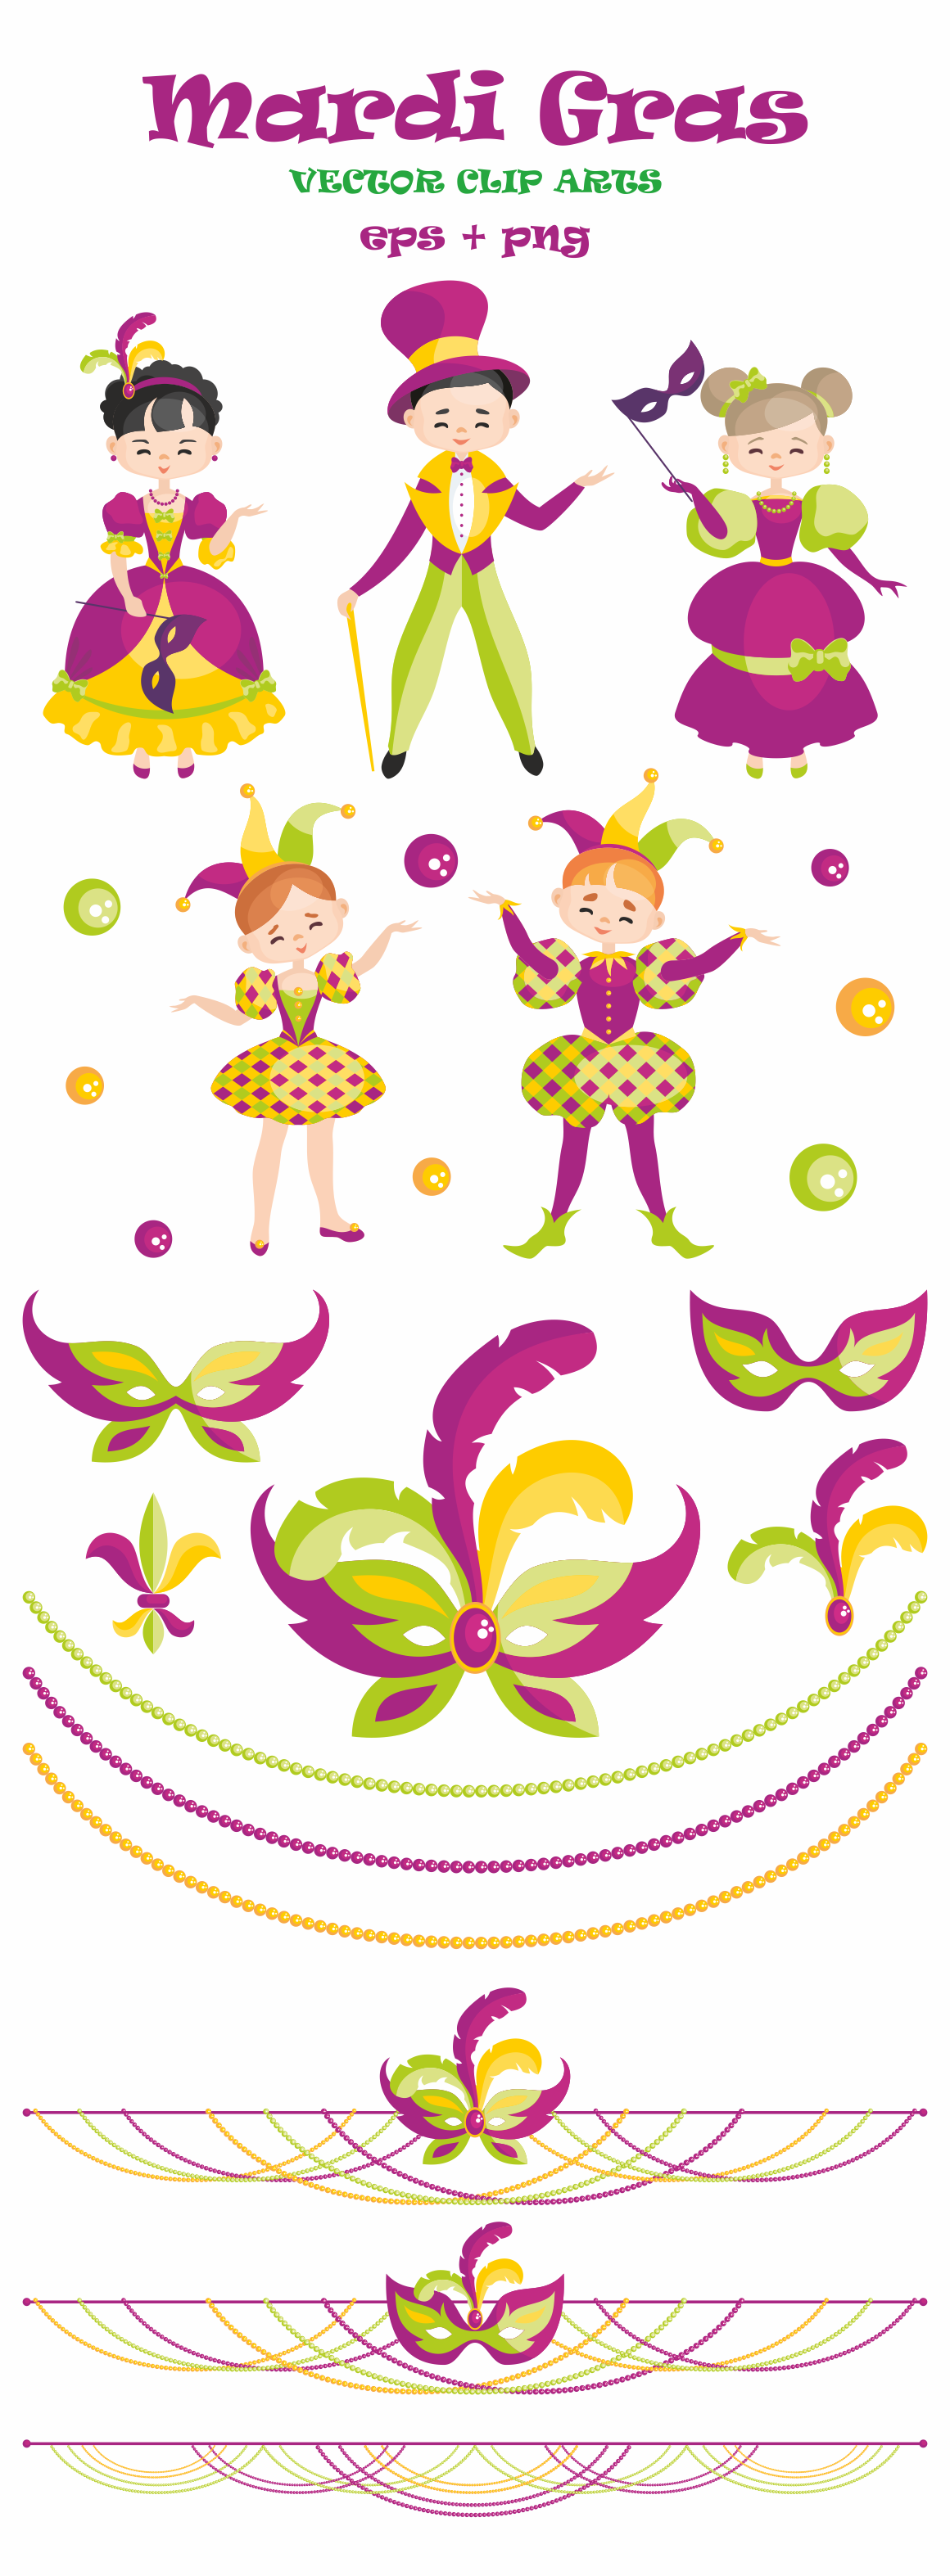 Print on Demand: Mardi Gras Mini Set, Vector Clip Arts and Seamless Patterns Illustrations Craft Cut File By Olga Belova - Image 2